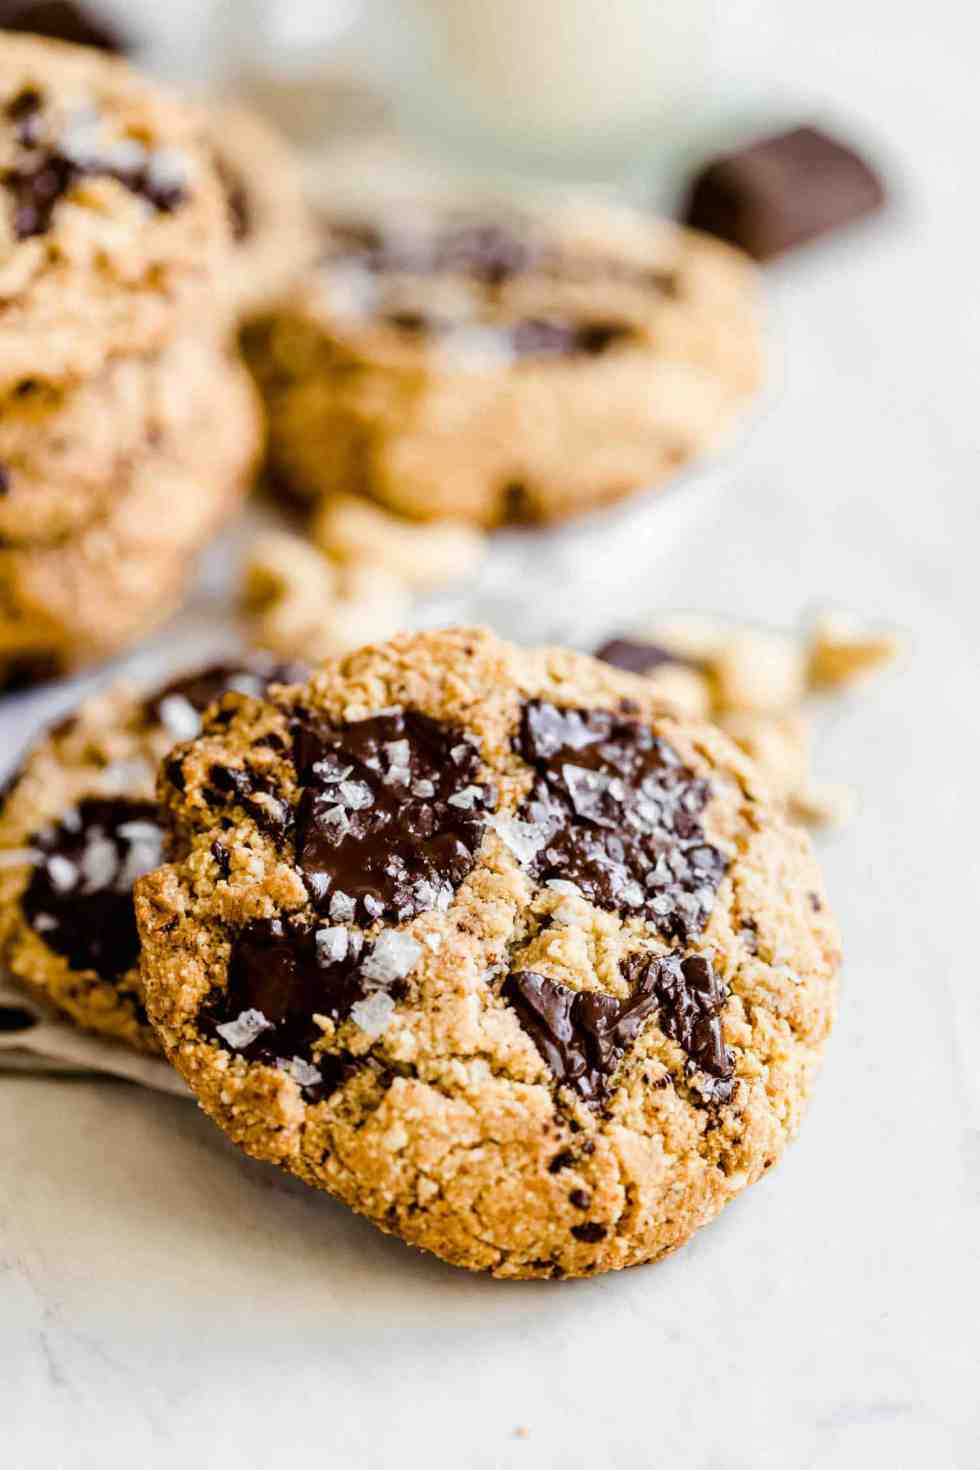 close up of gooey chocolate chip cookies on a marble board with flaked salt